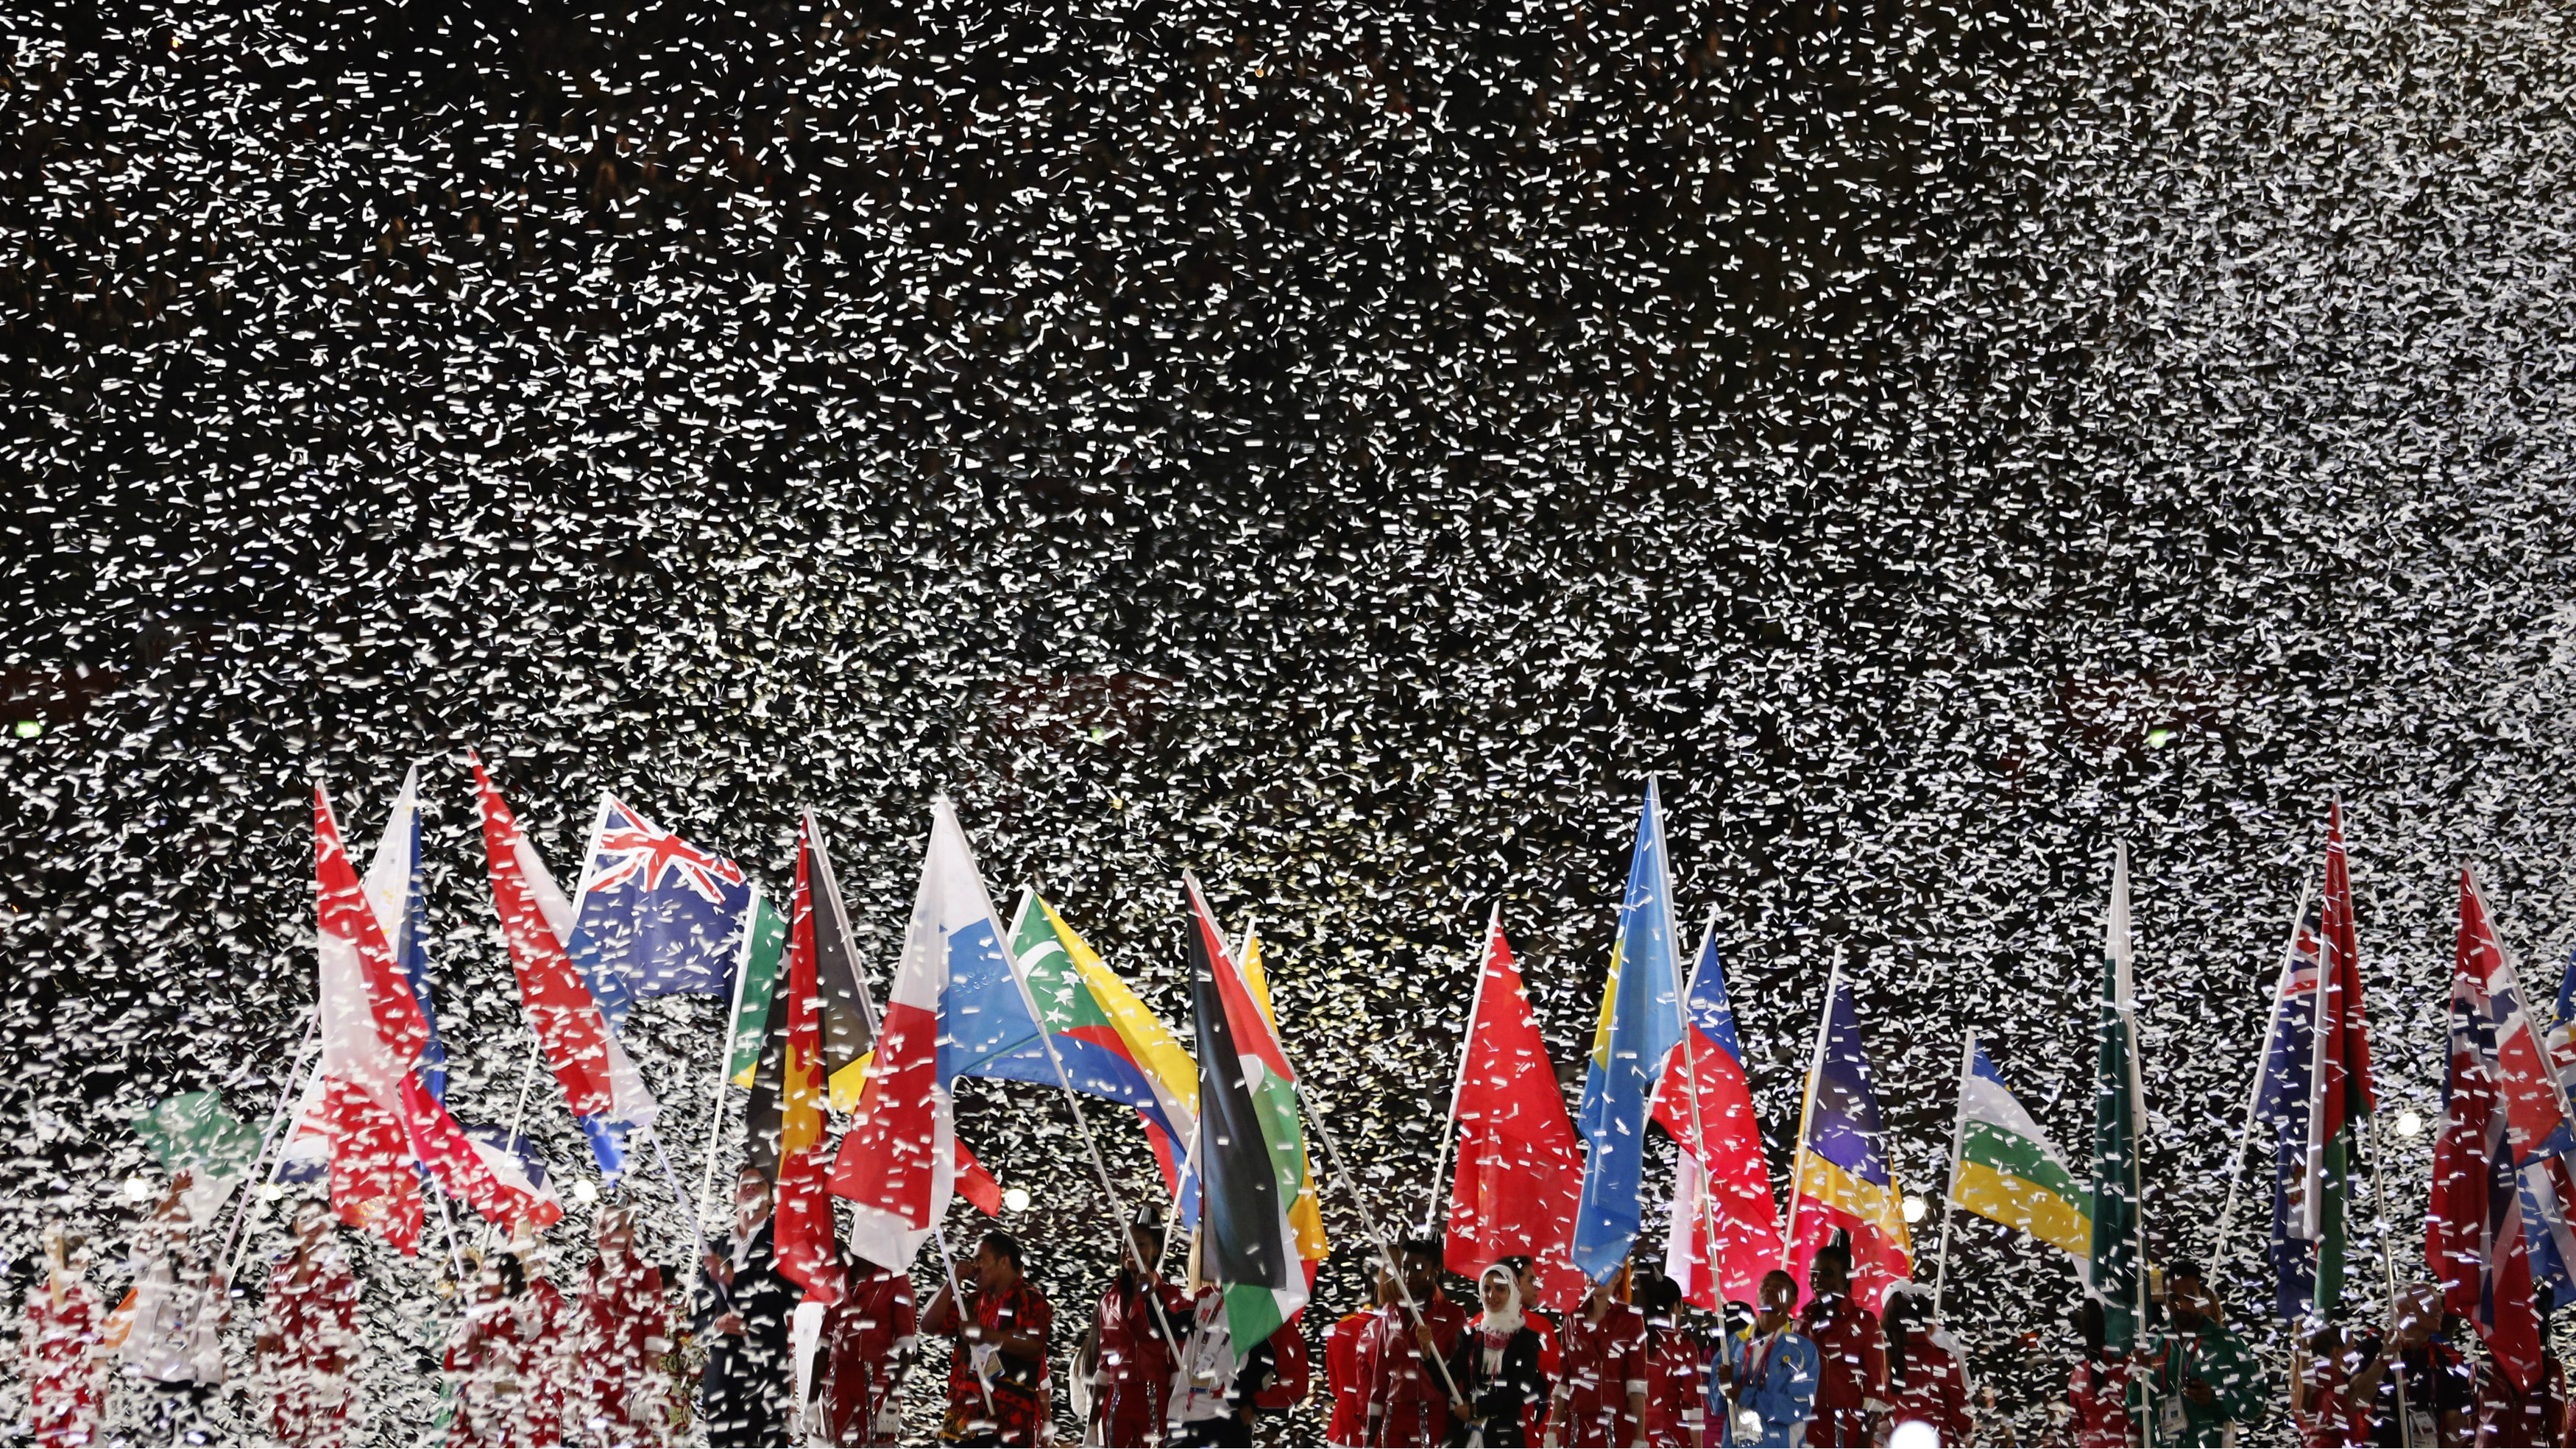 International flags and confetti